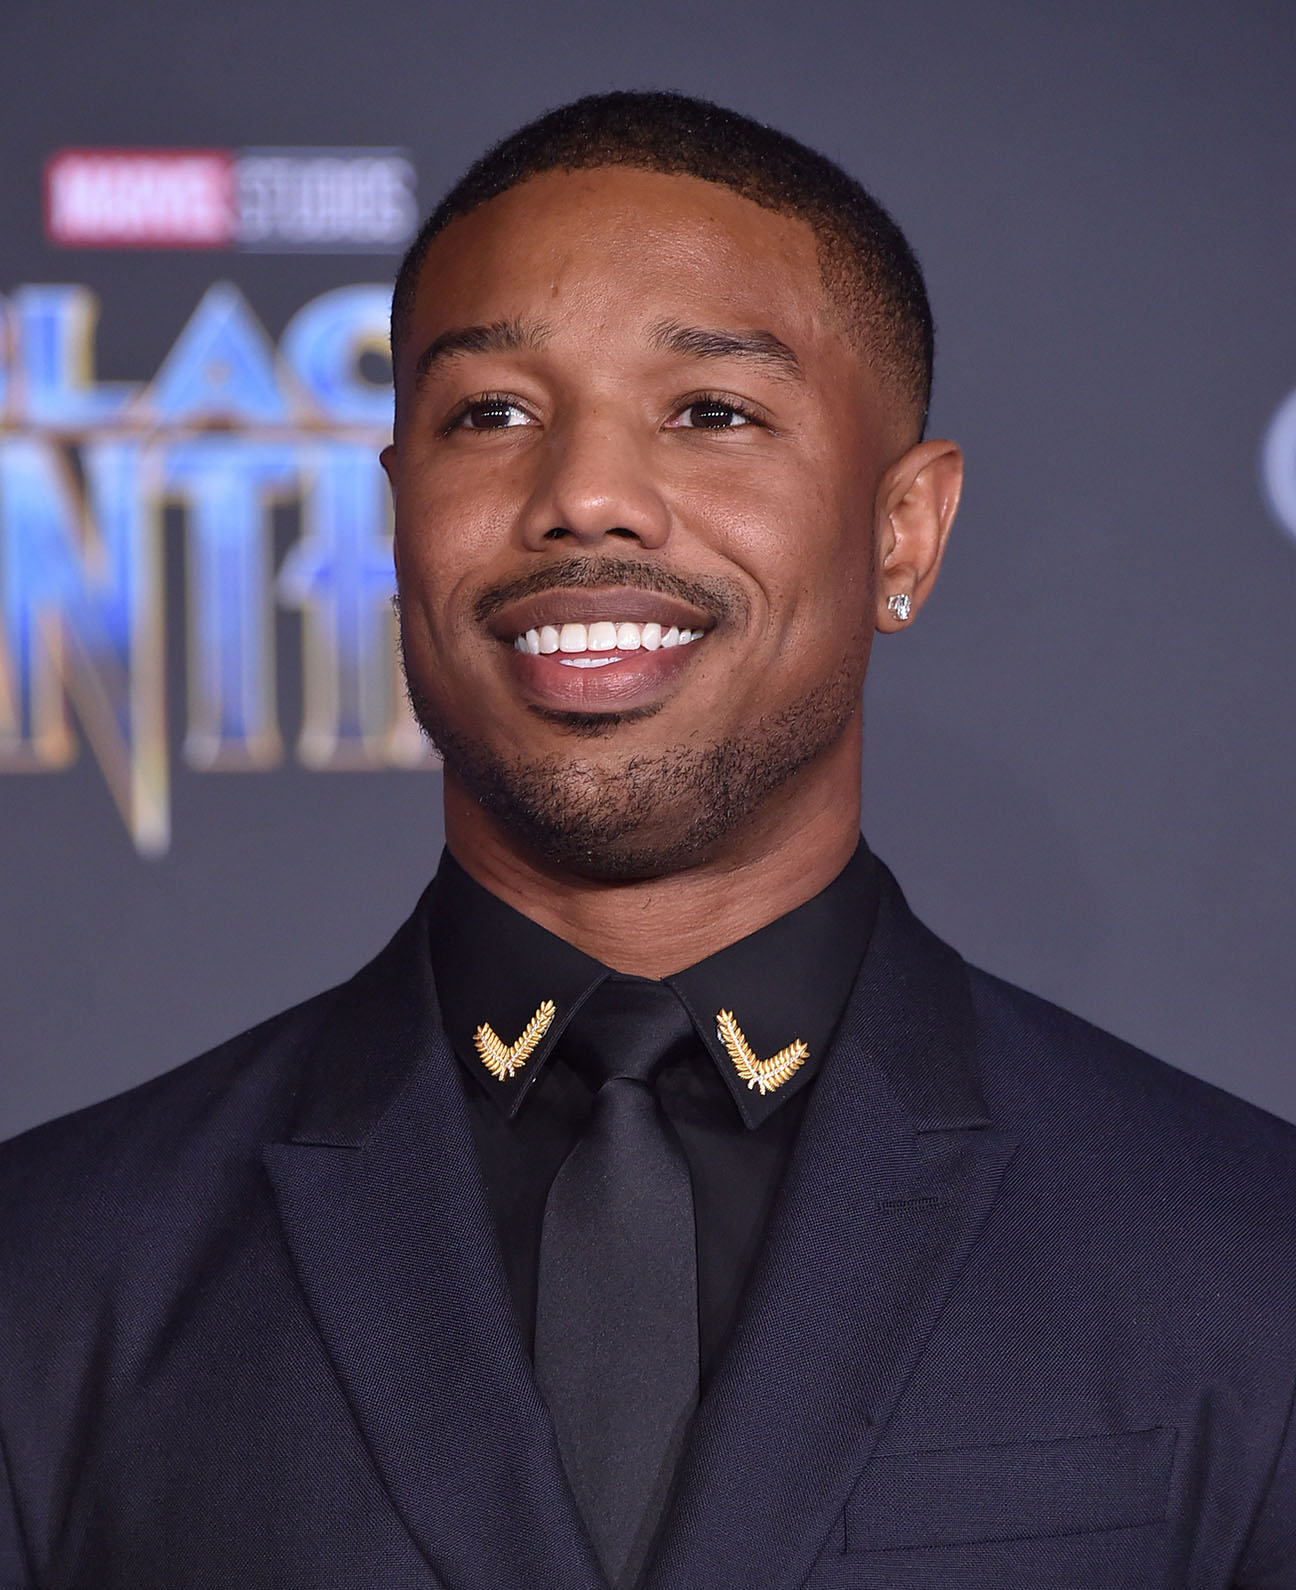 Actor, Michael B. Jordan announced the day after the Oscars that his production company, Outlier Society, would adopt the inclusion rider in all of its projects.